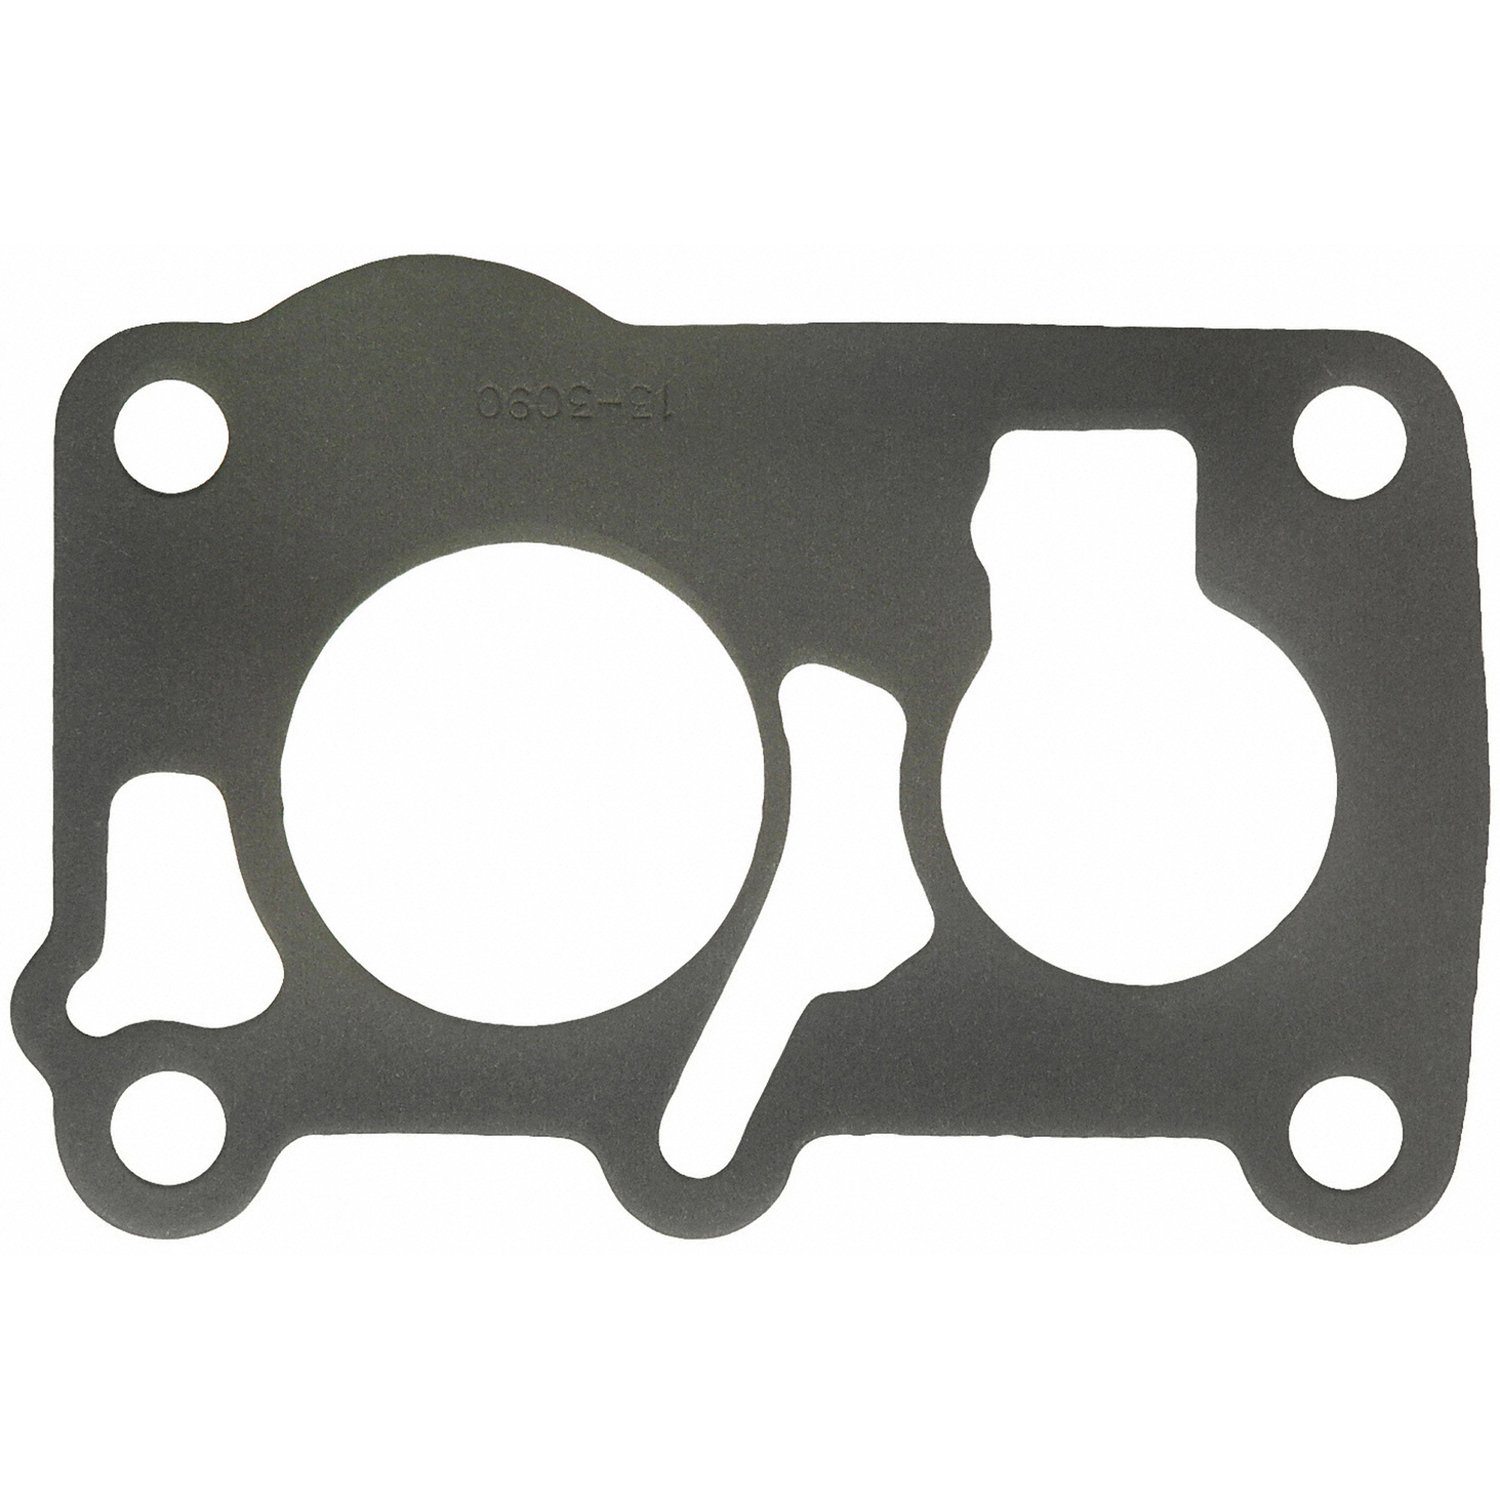 Fel-Pro 61031 Throttle Body Mounting Gasket